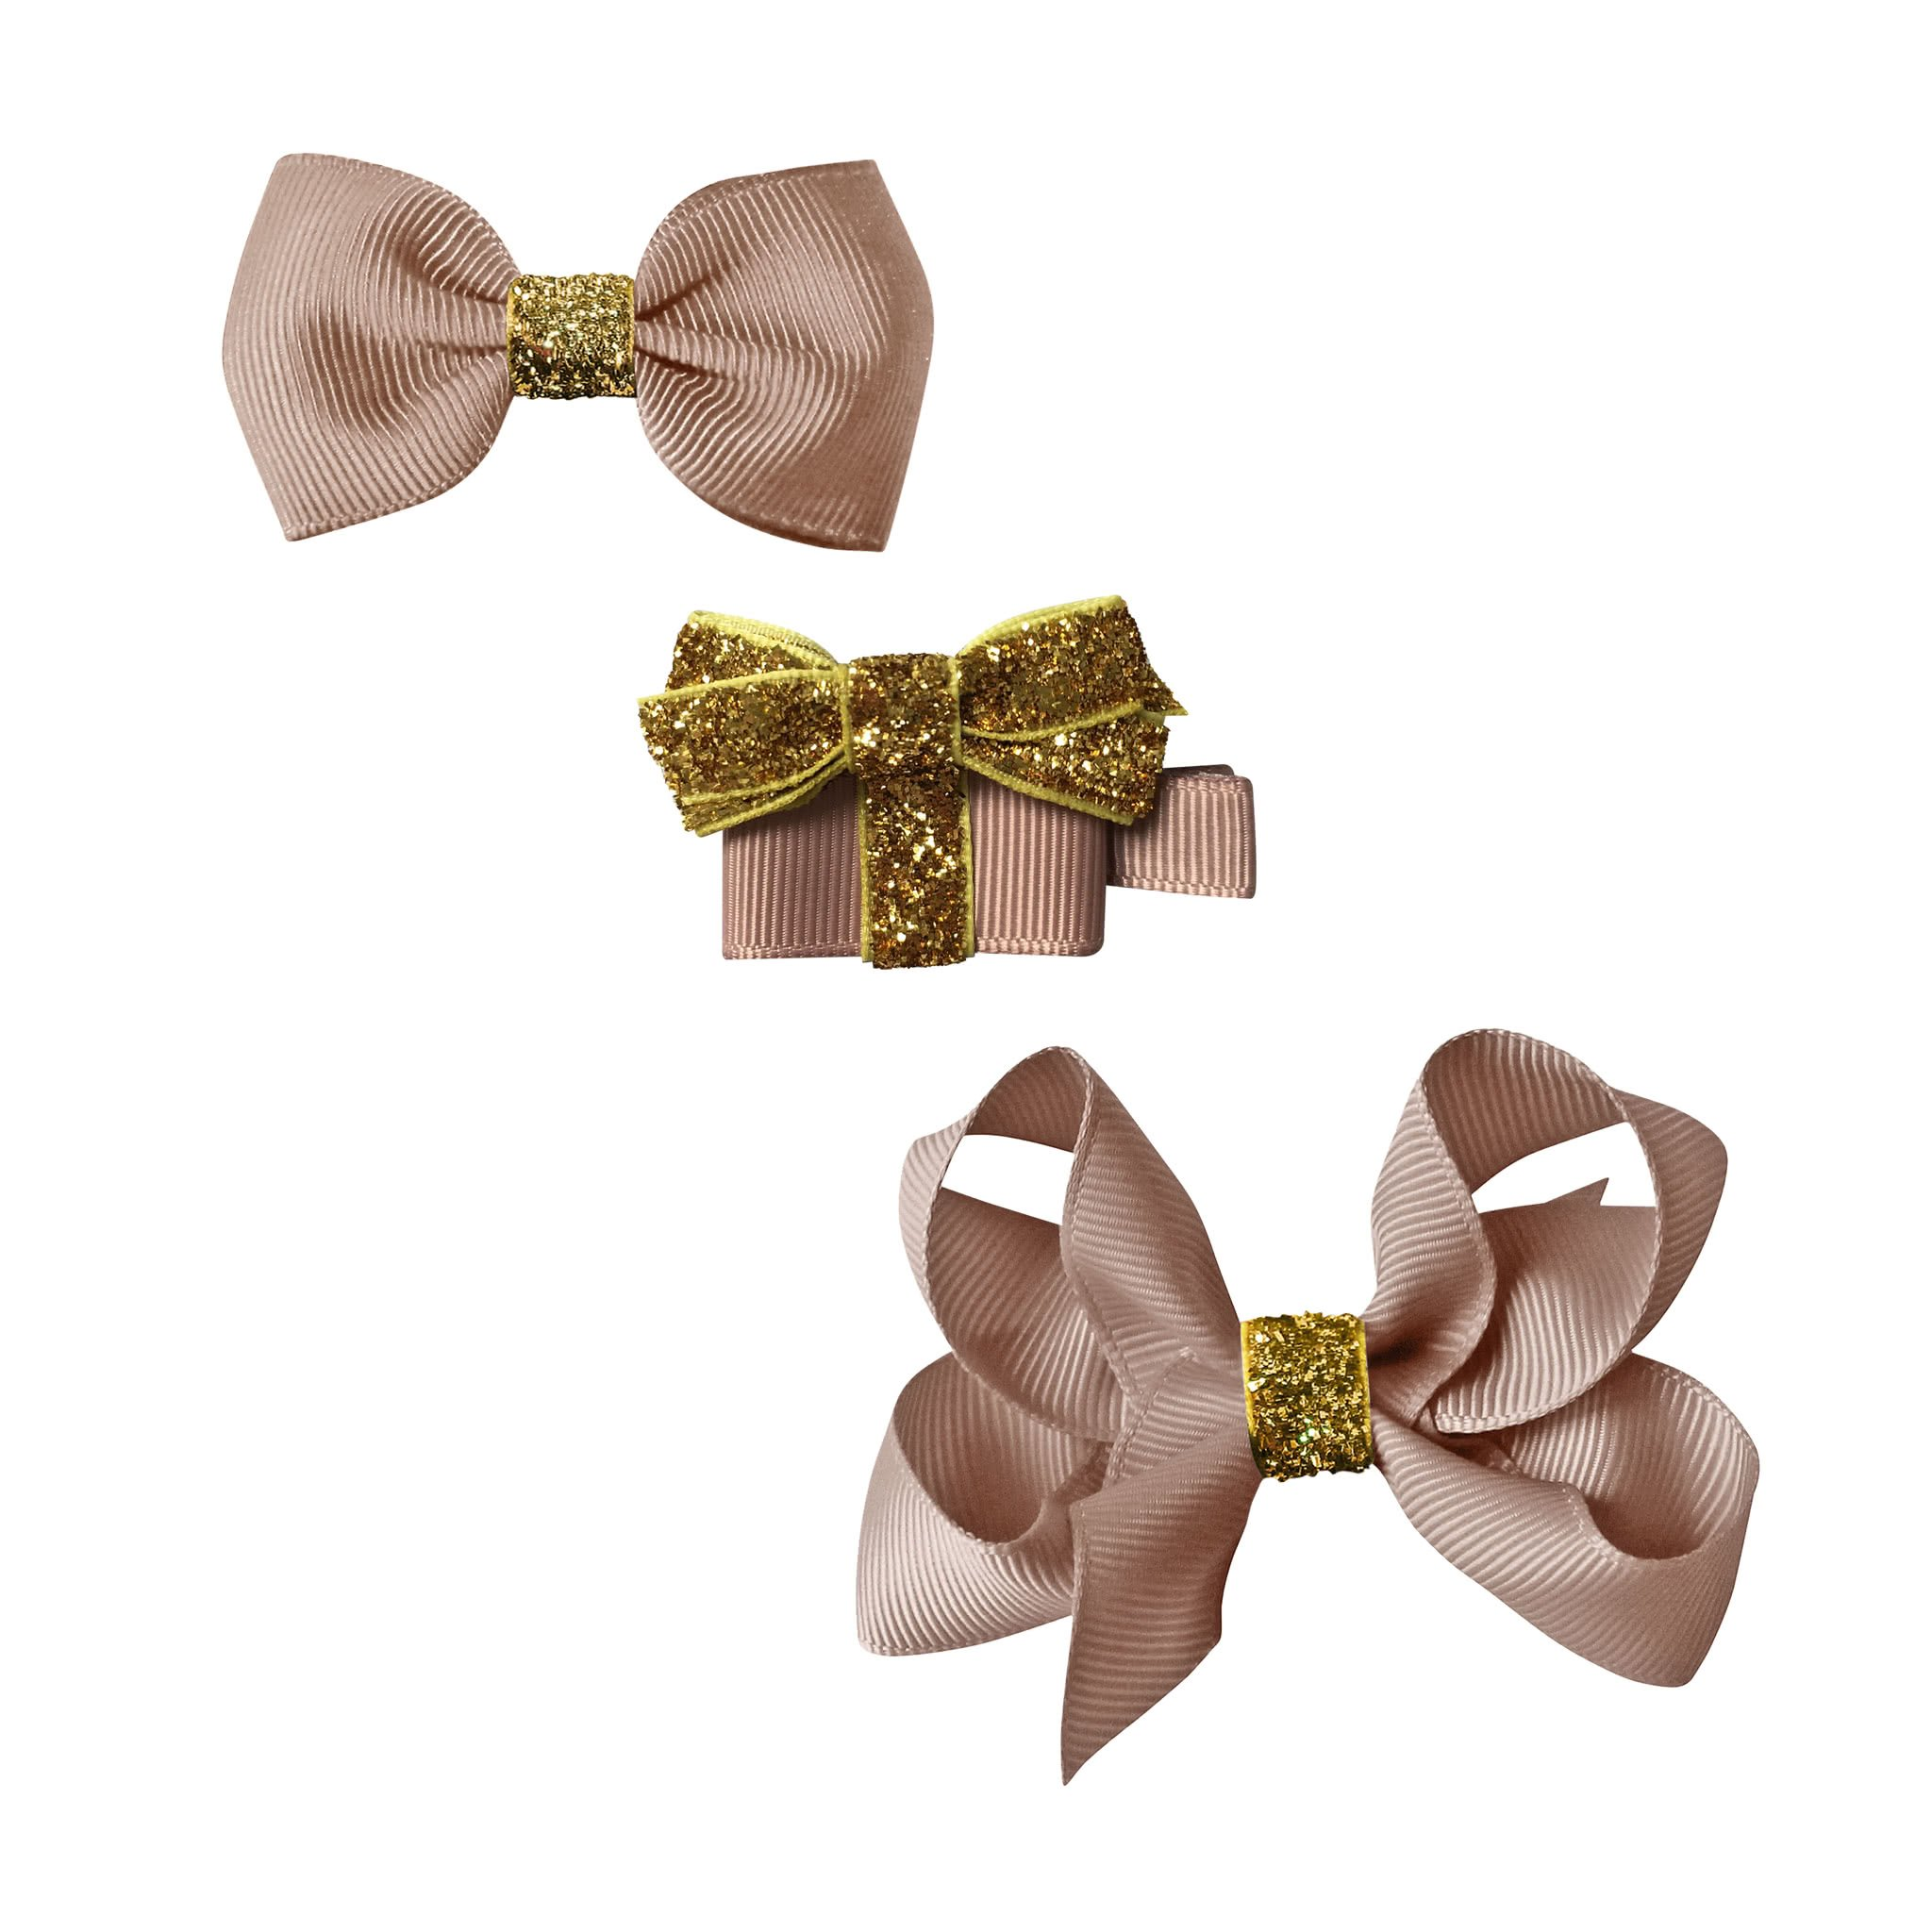 Image of Milledeux® Classic Christmas gift set - a Gift and 2 bows - ginger snap / gold